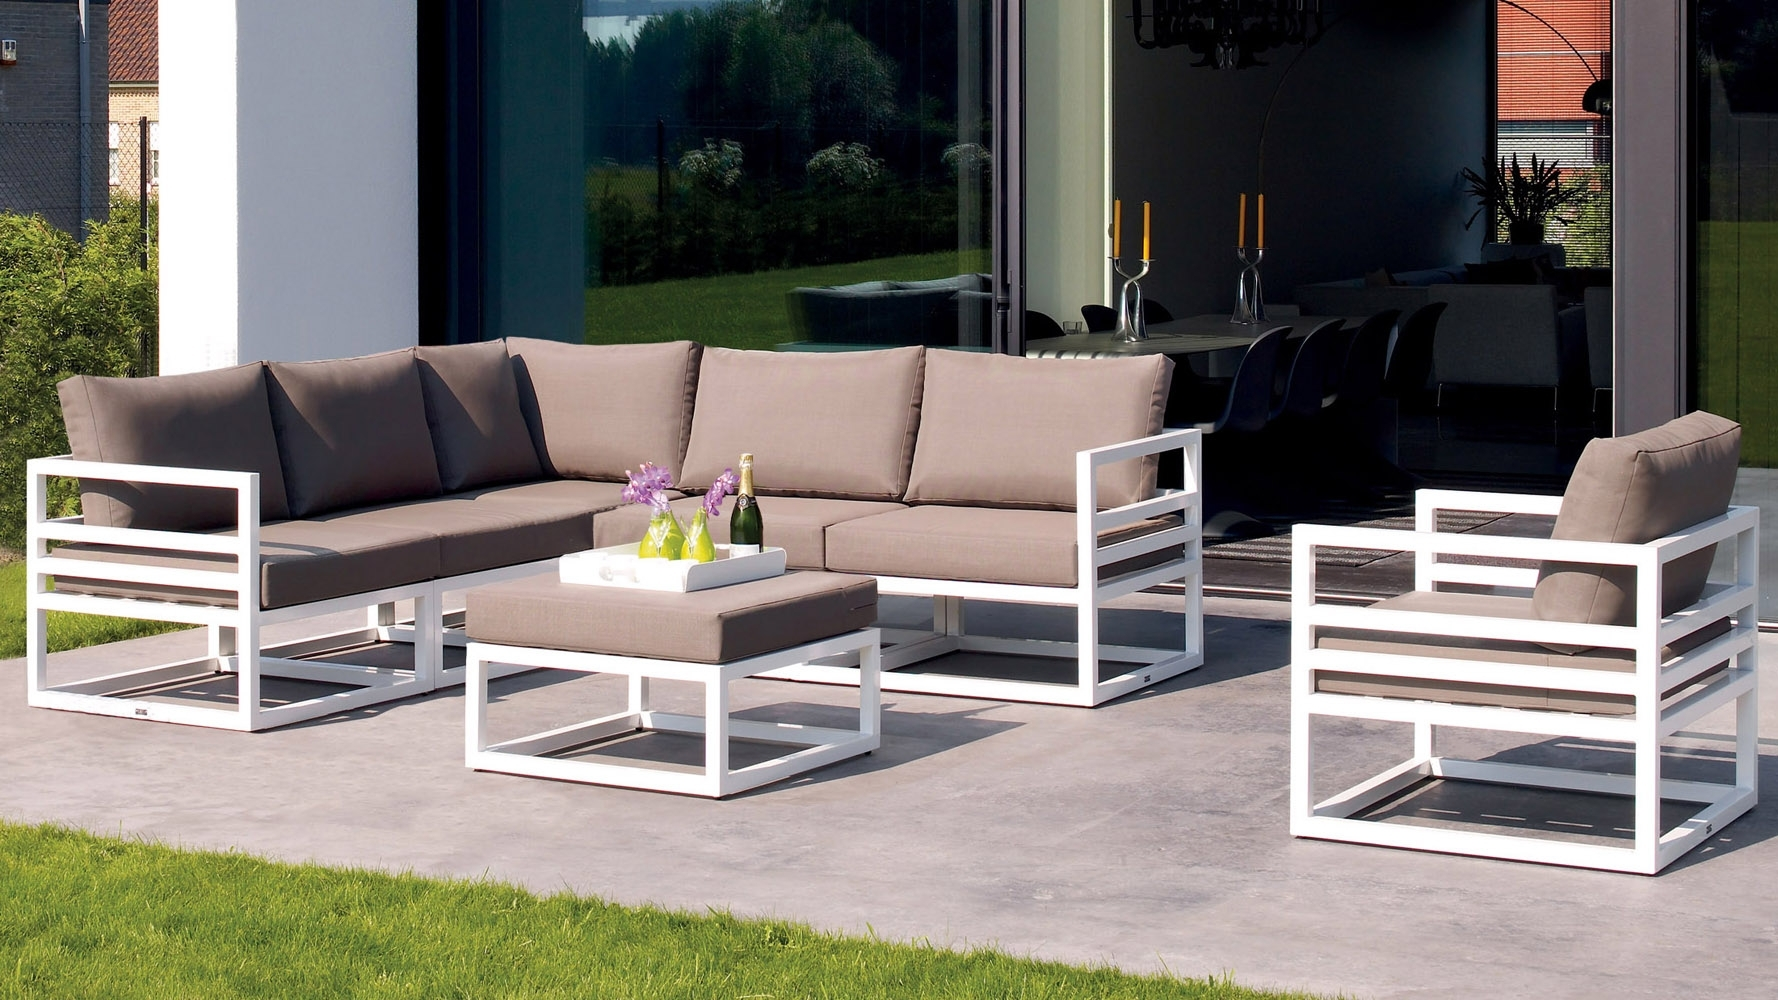 Image of: Patio White Aluminum Patio Furniture Pythonet Home Furniture Pertaining To Modern Outdoor Lounge Furniture Best Modern Outdoor Lounge Furniture